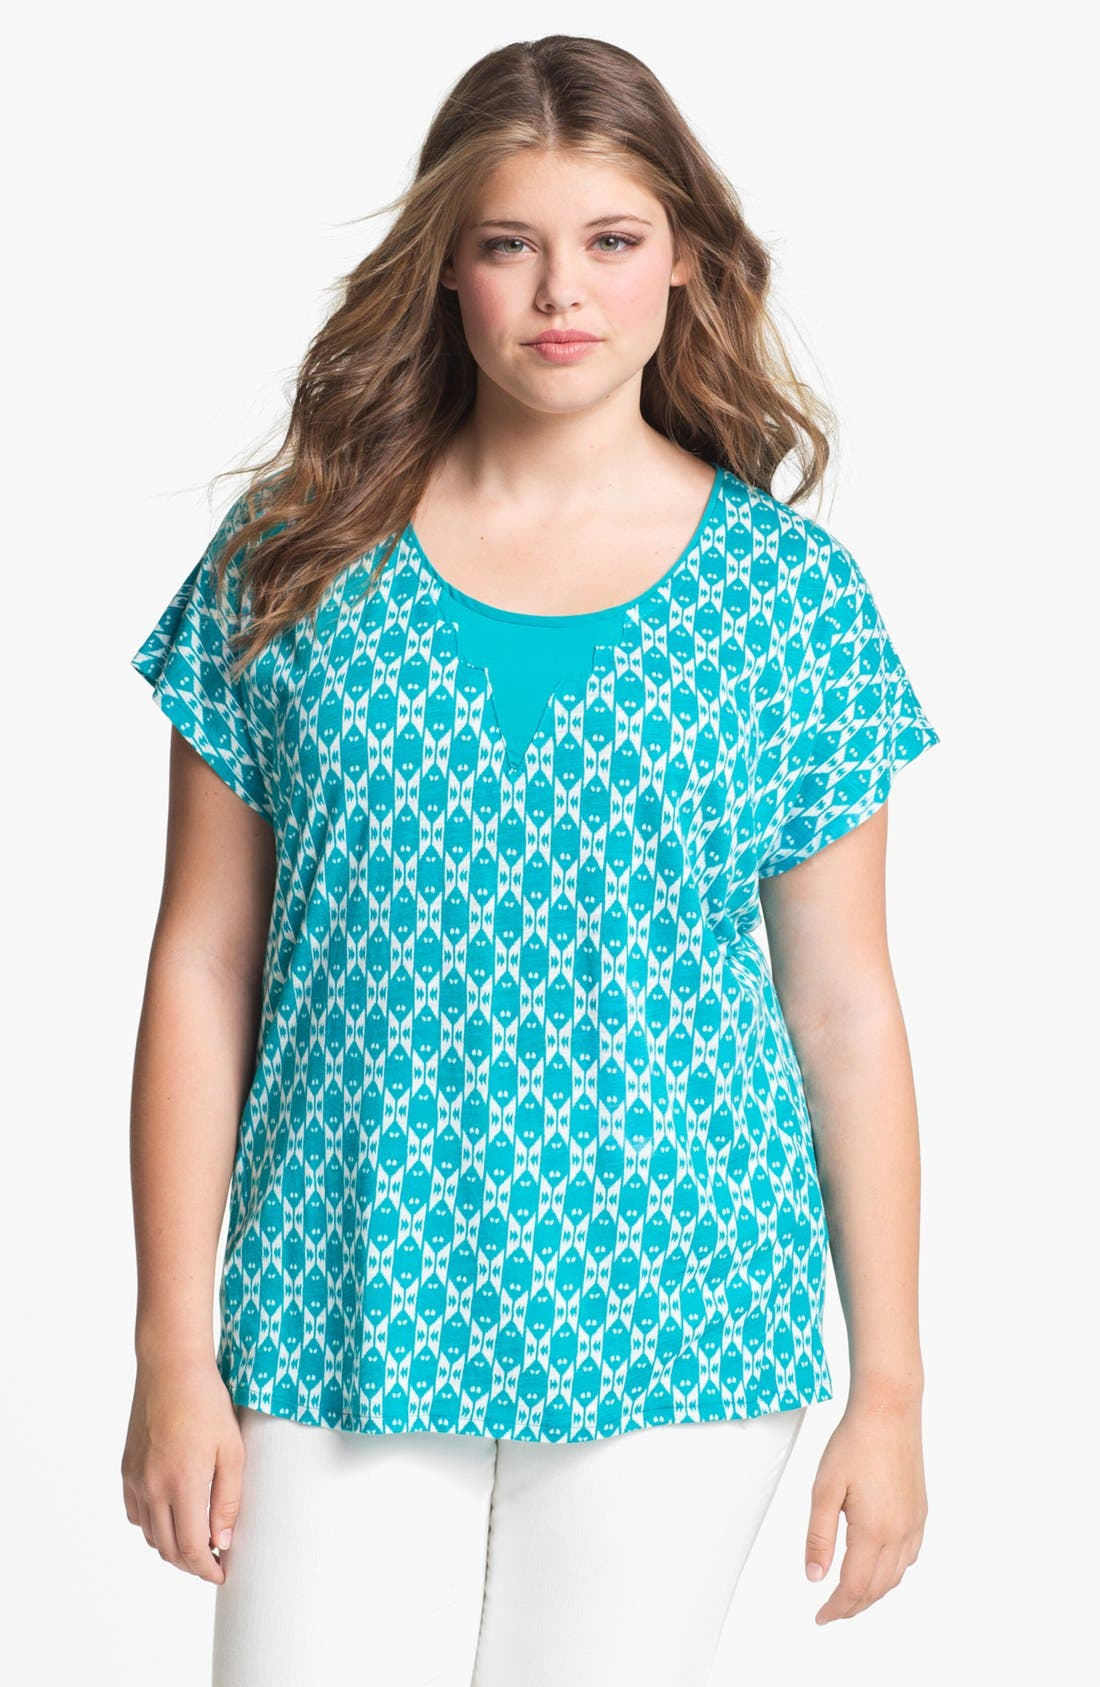 Alternate Image 1 Selected - Lucky Brand 'Carina' Ikat Print Top (Plus Size)